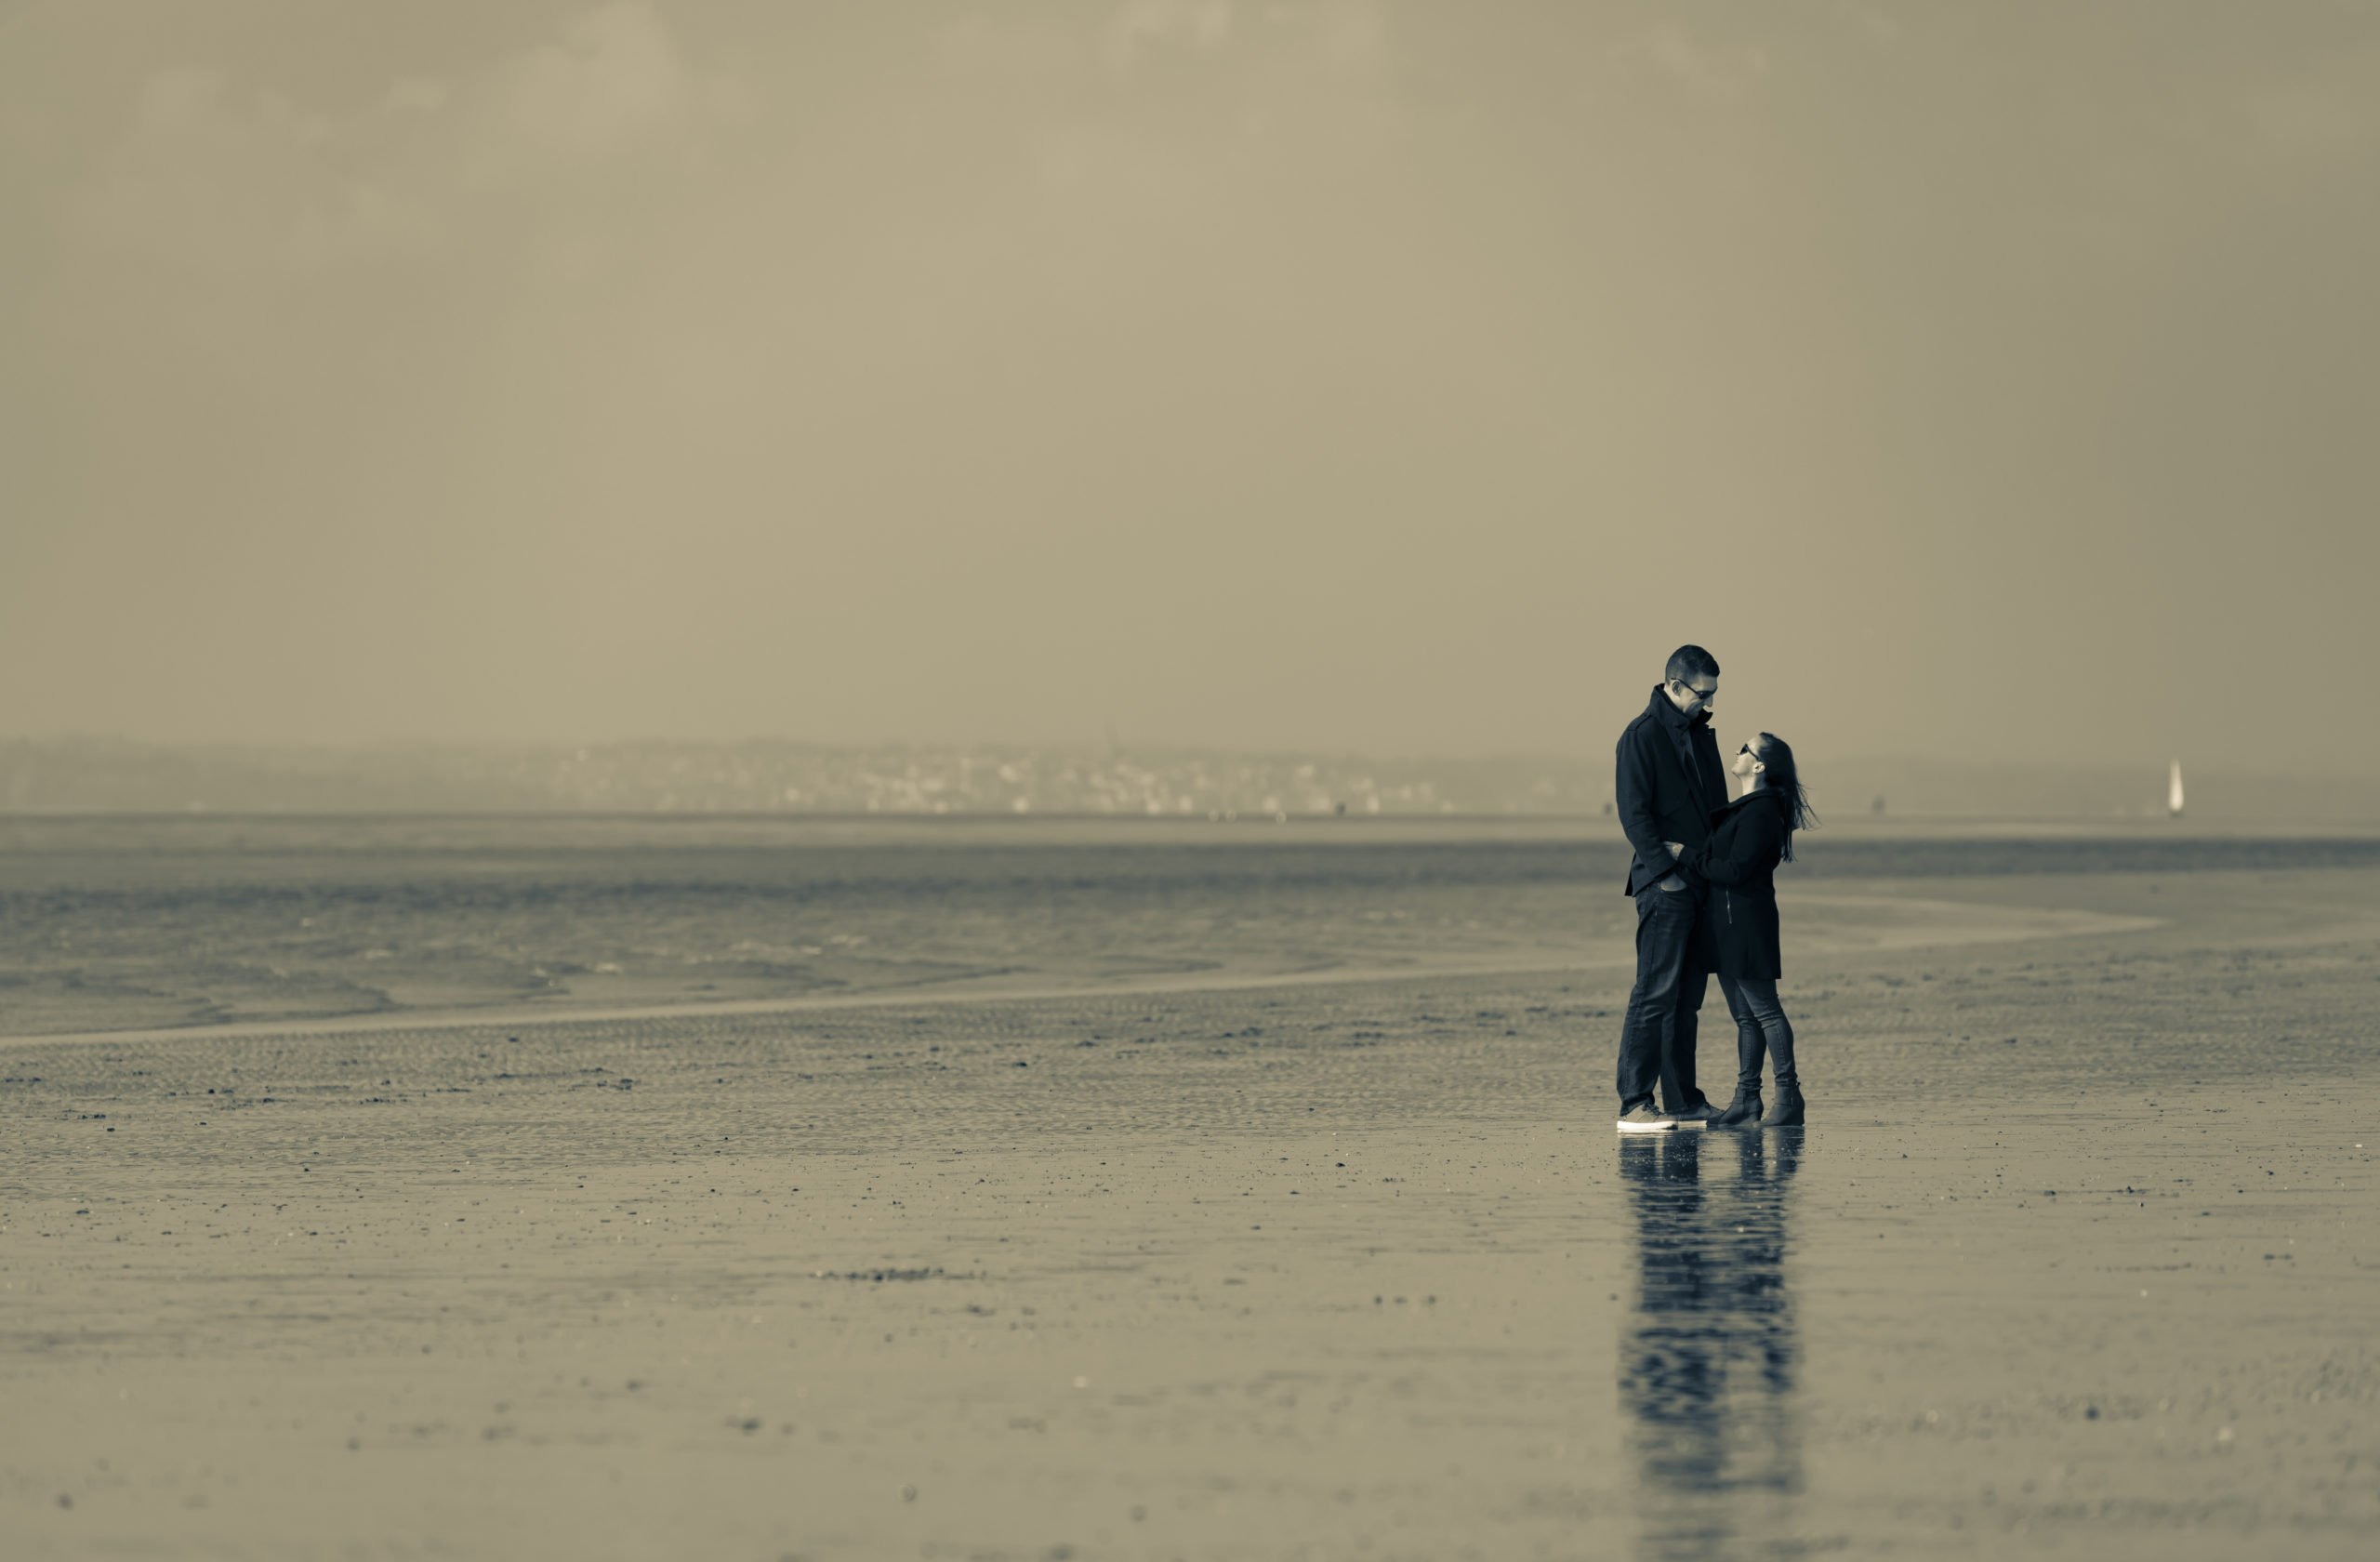 couple standing together on a beach with the tide out